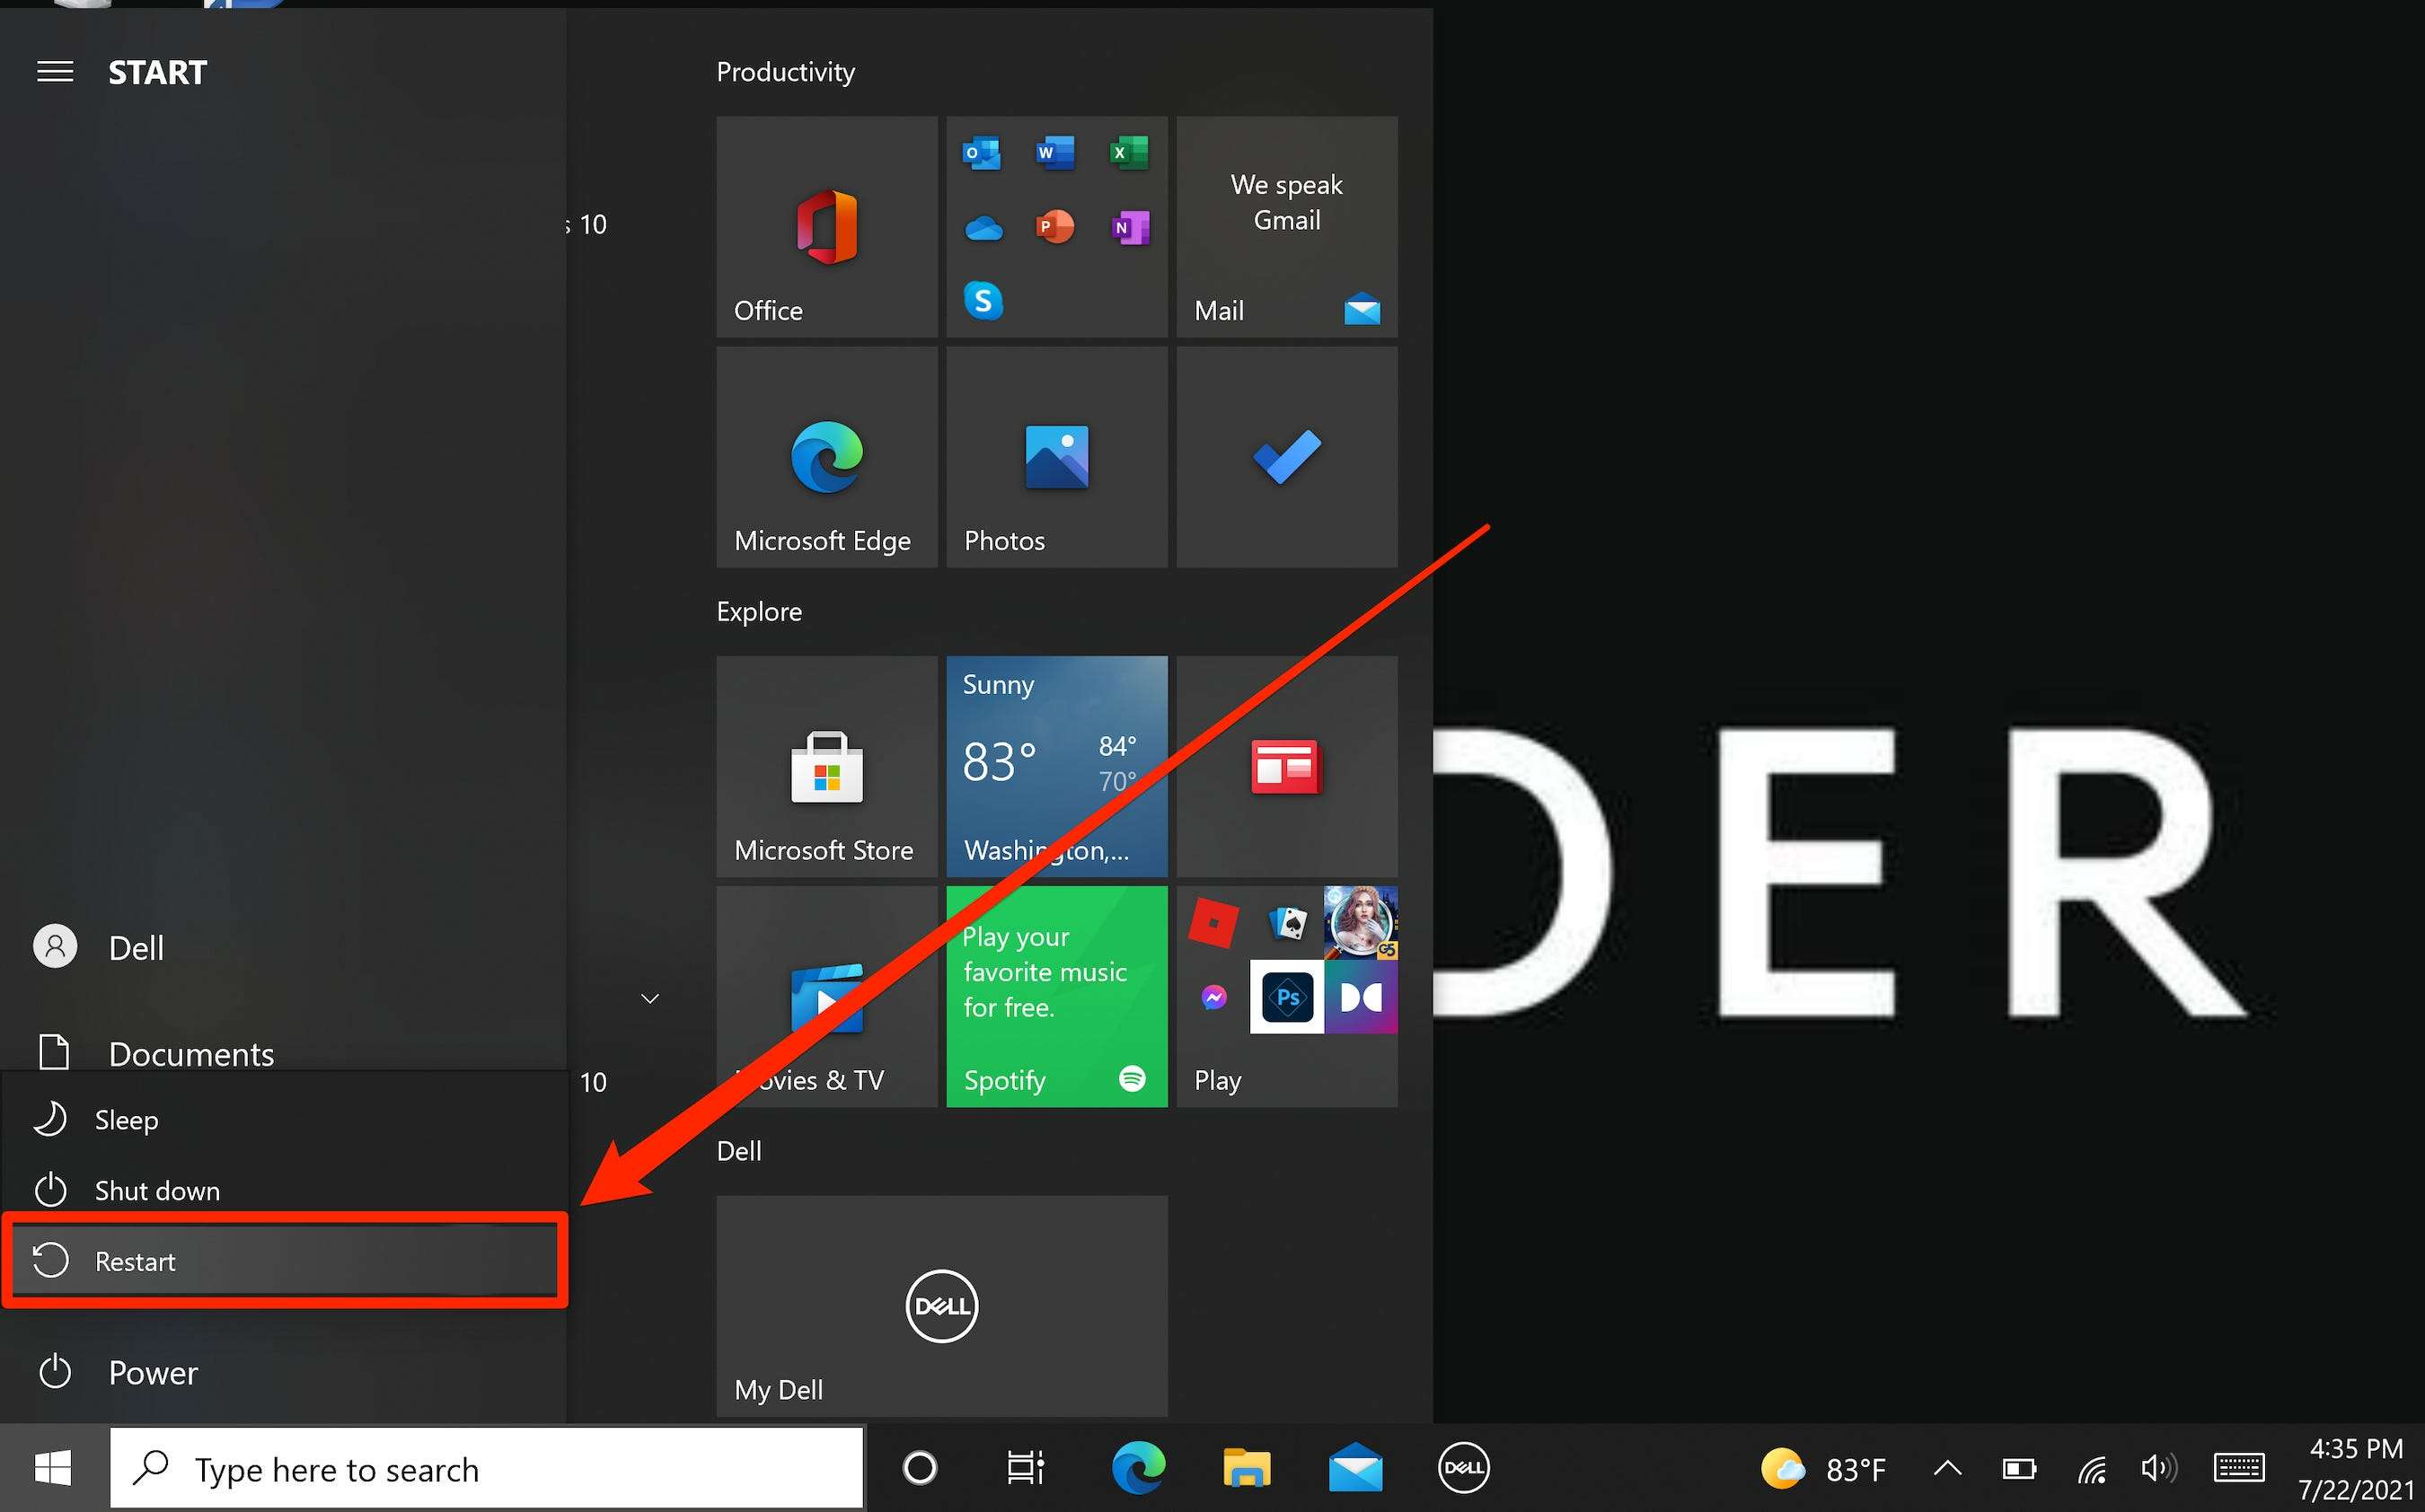 How to start Windows 10 in Safe Mode and then exit later